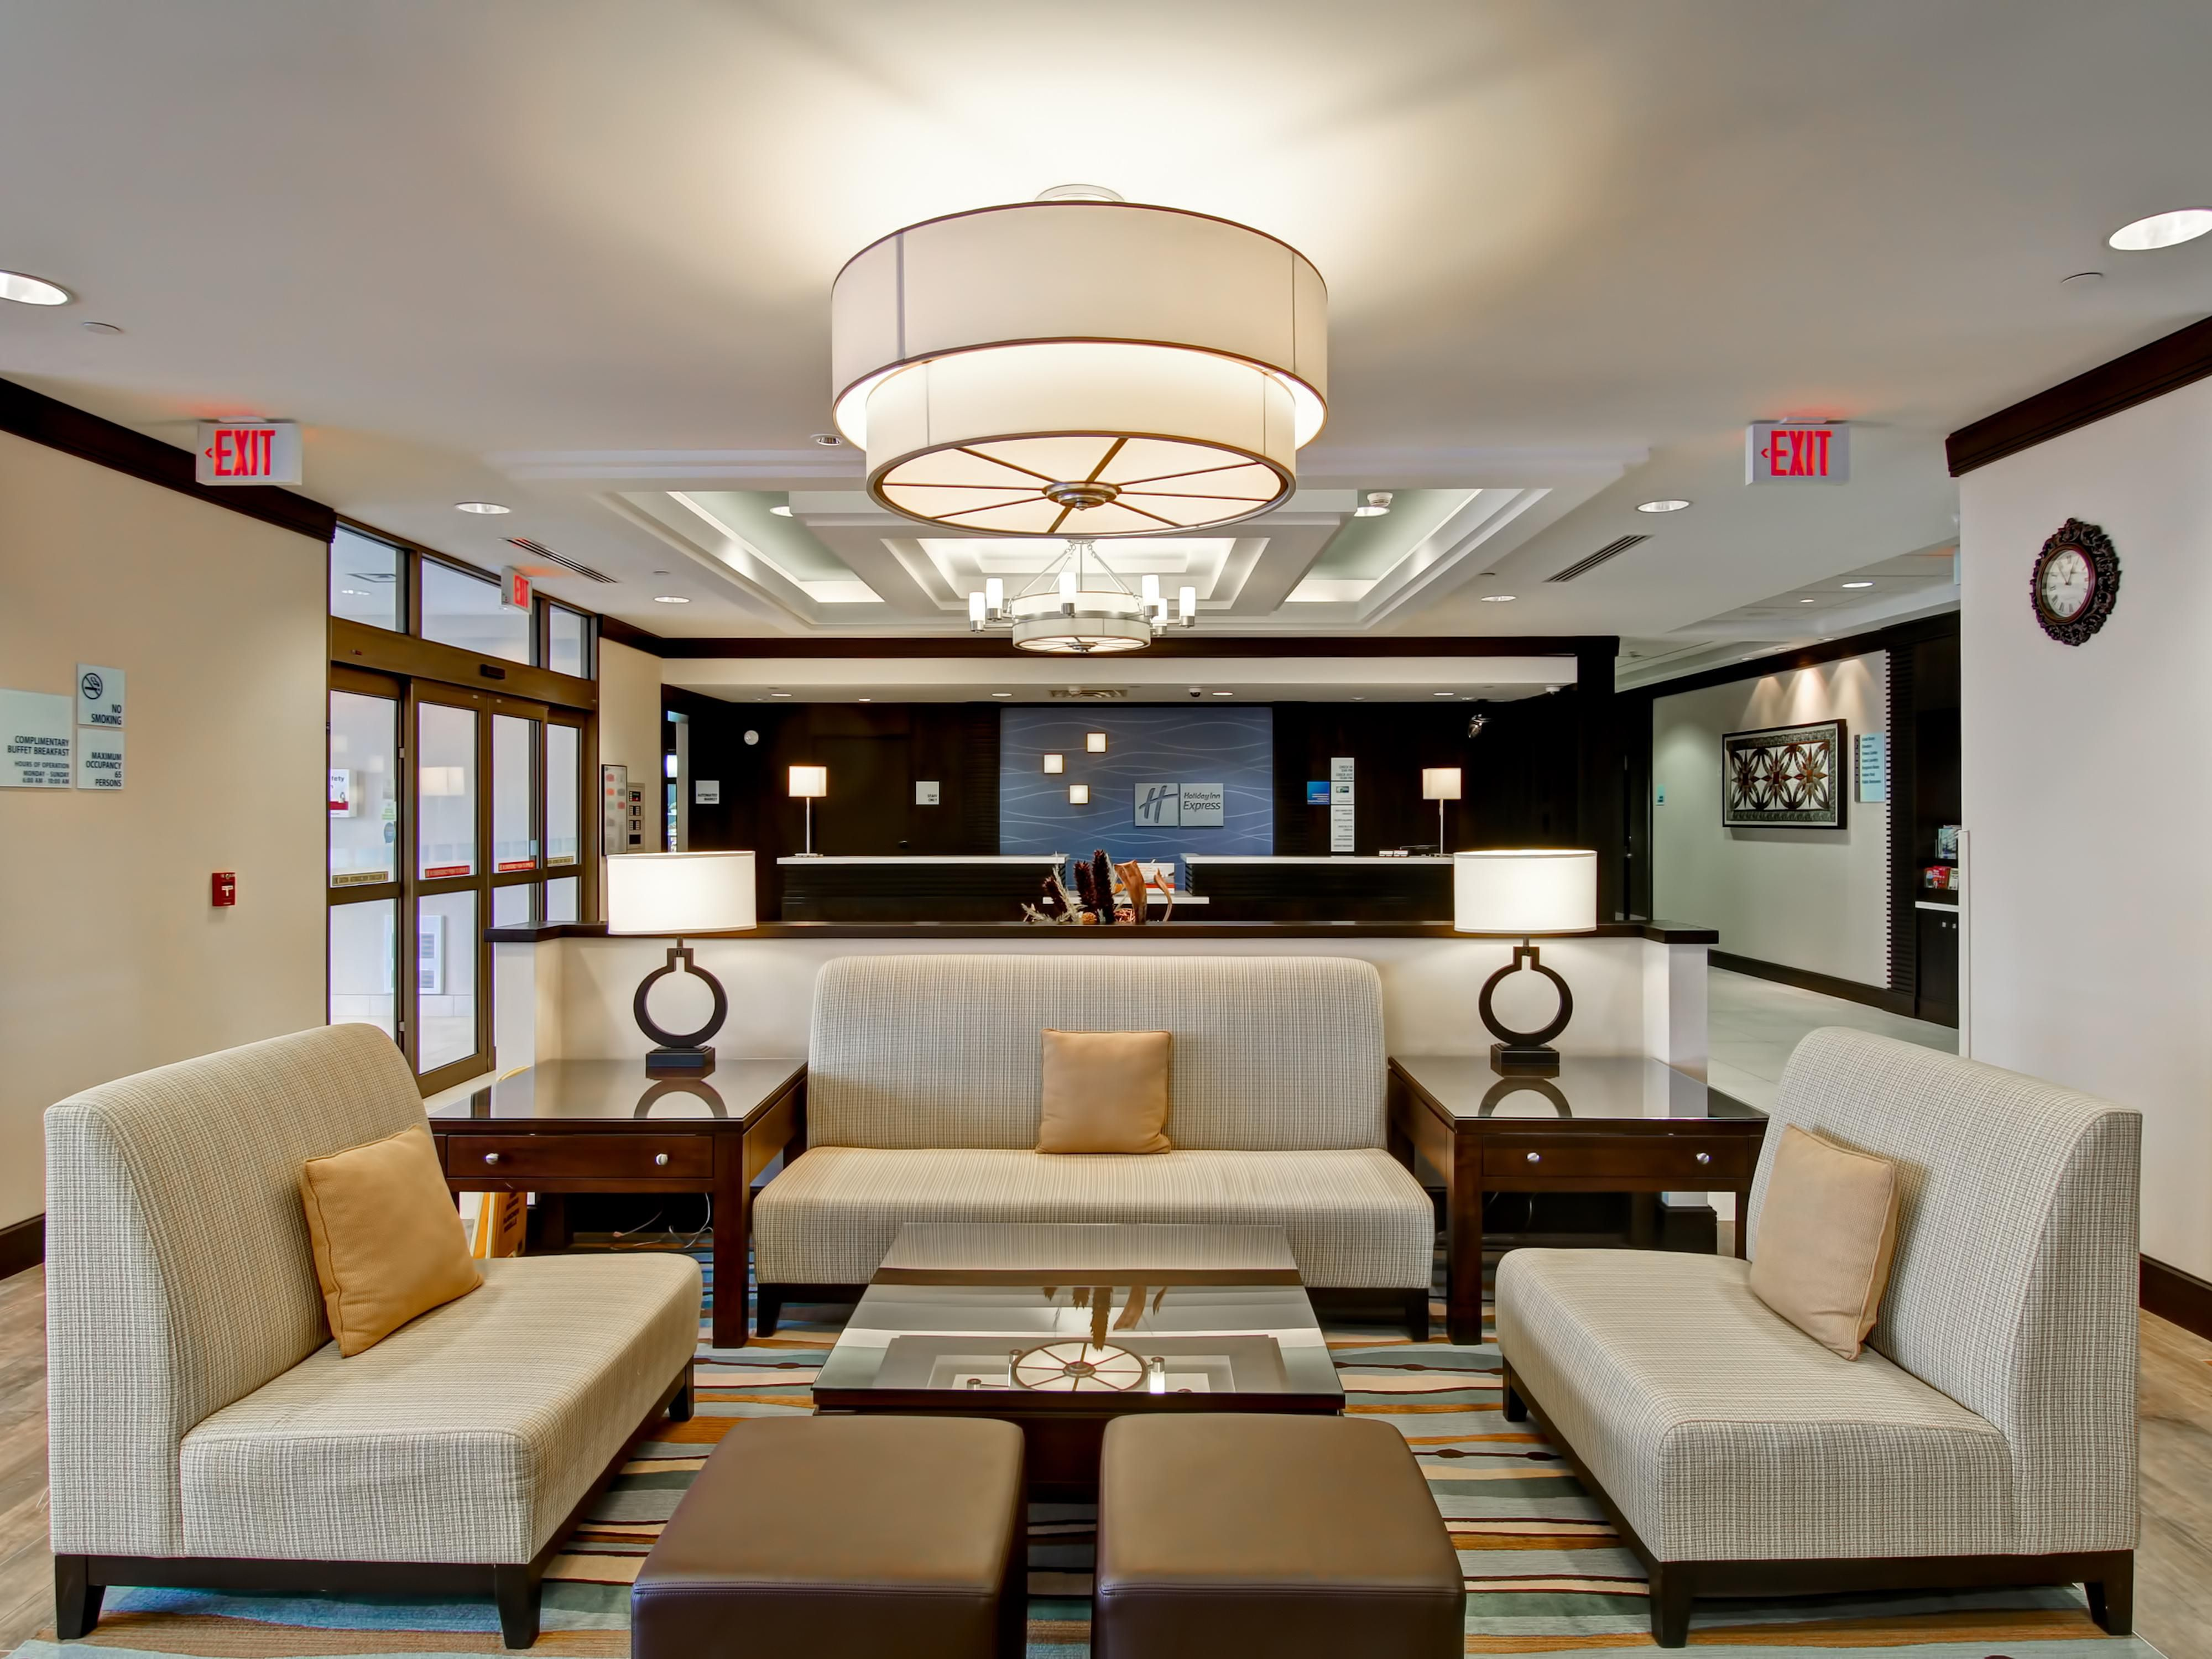 Our Lobby was Honored with the IHG New Development Design Award!